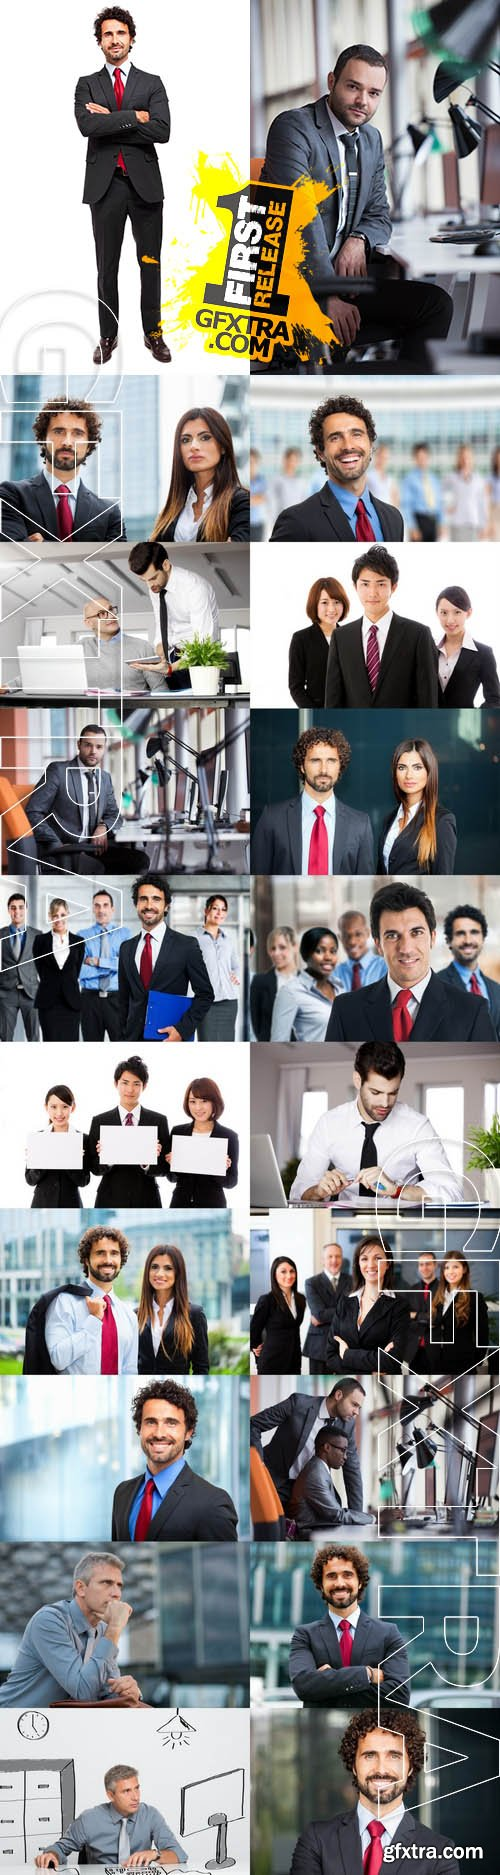 Stock Photos - Business People 2